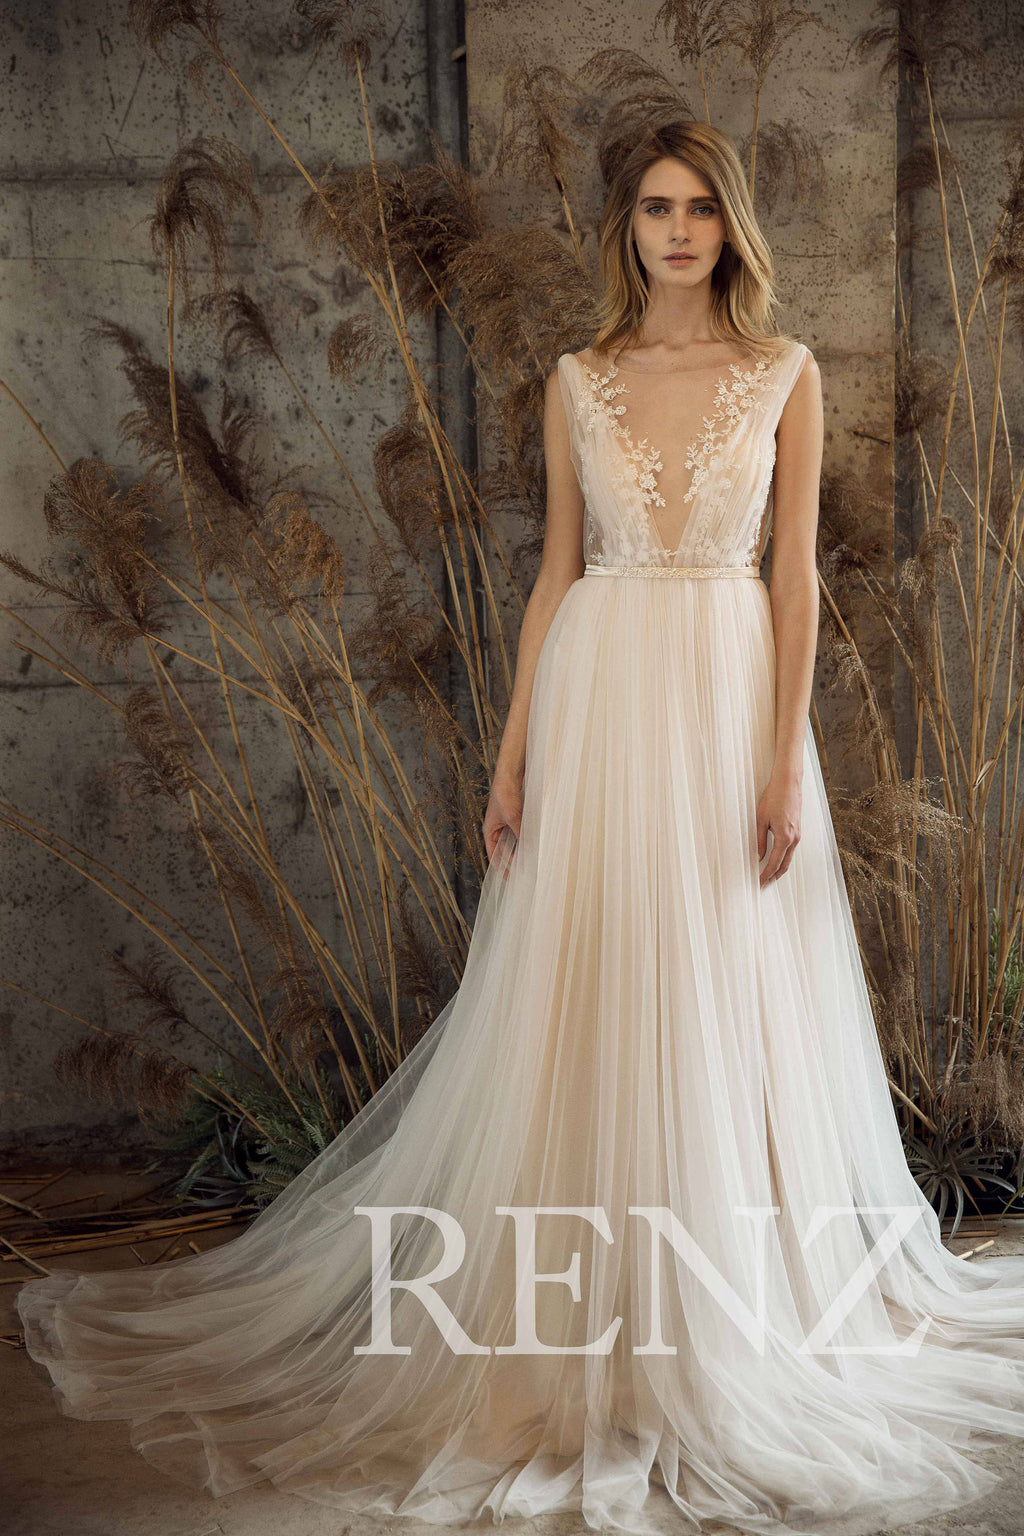 Wedding Dress Off White Tulle Dress V Neck Bridal Dress Lace Illusion Backless Bride Dress Train Maxi Dress Sleeveless Bridal Gown(LW192)